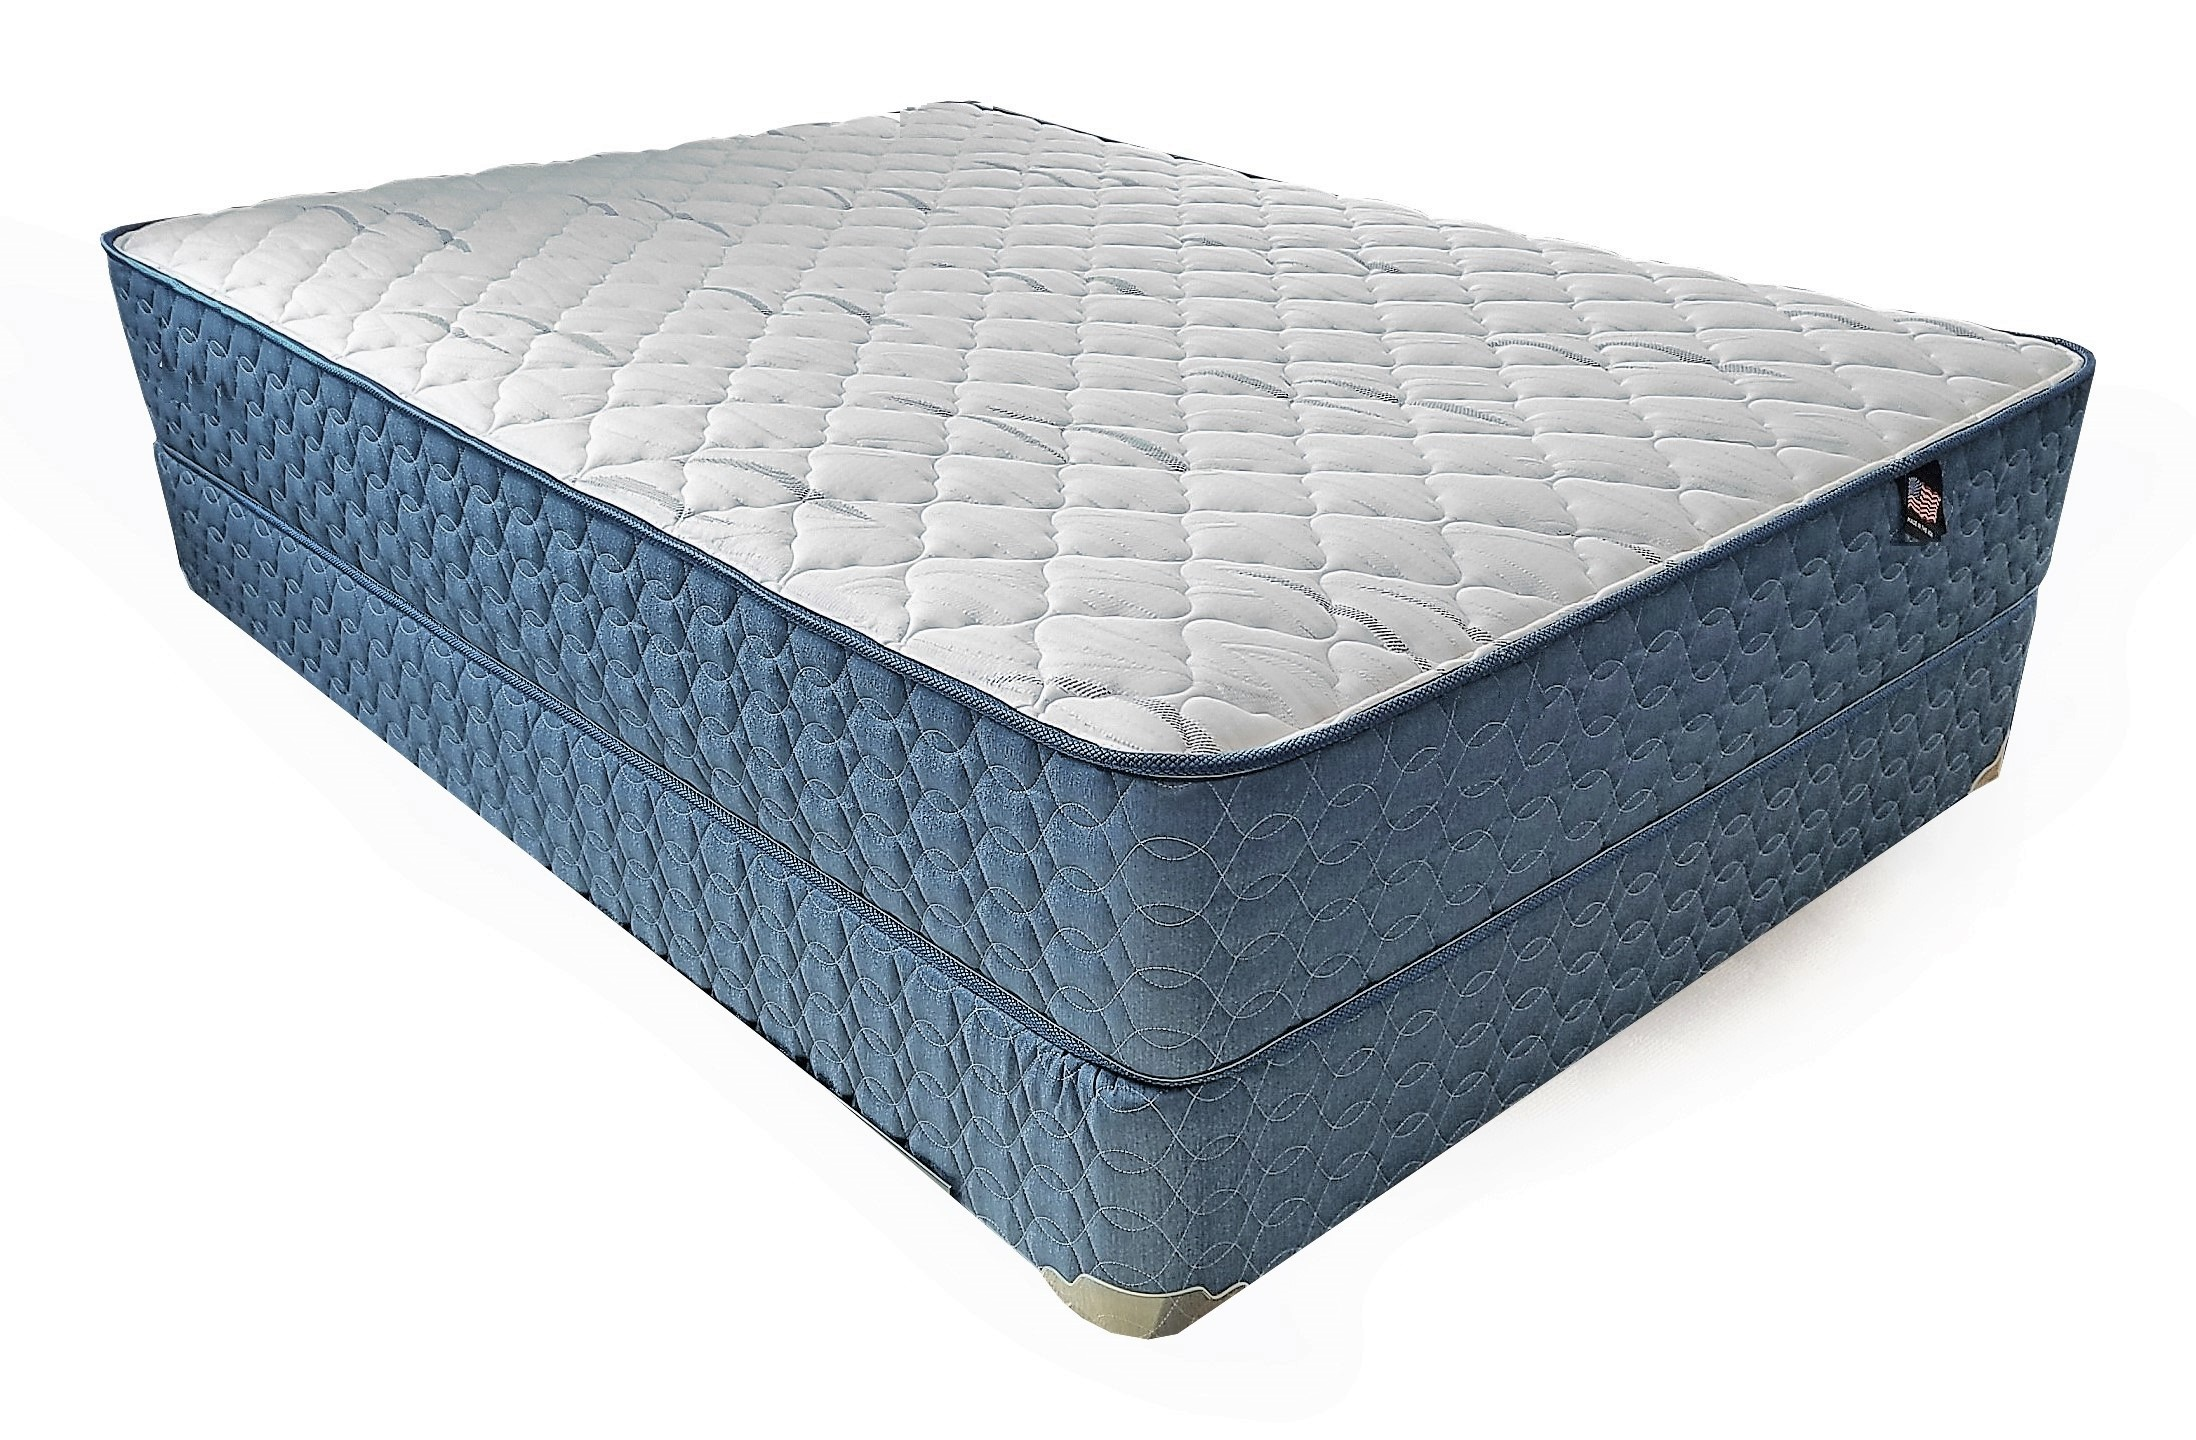 Constitution Cushion Firm King Mattress